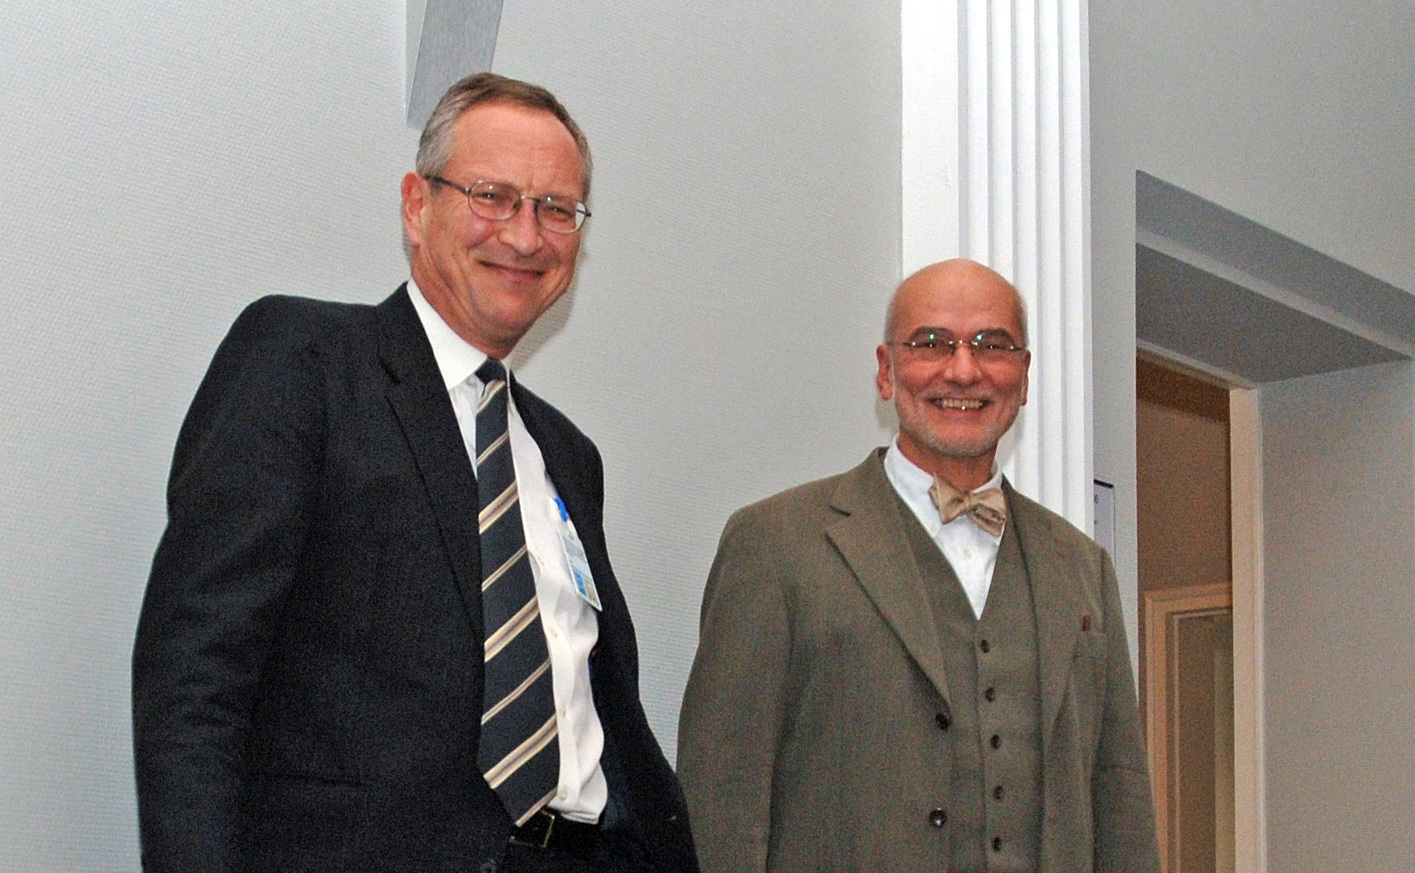 Appointment of Nick Witney and Hilmar Linnenkamp